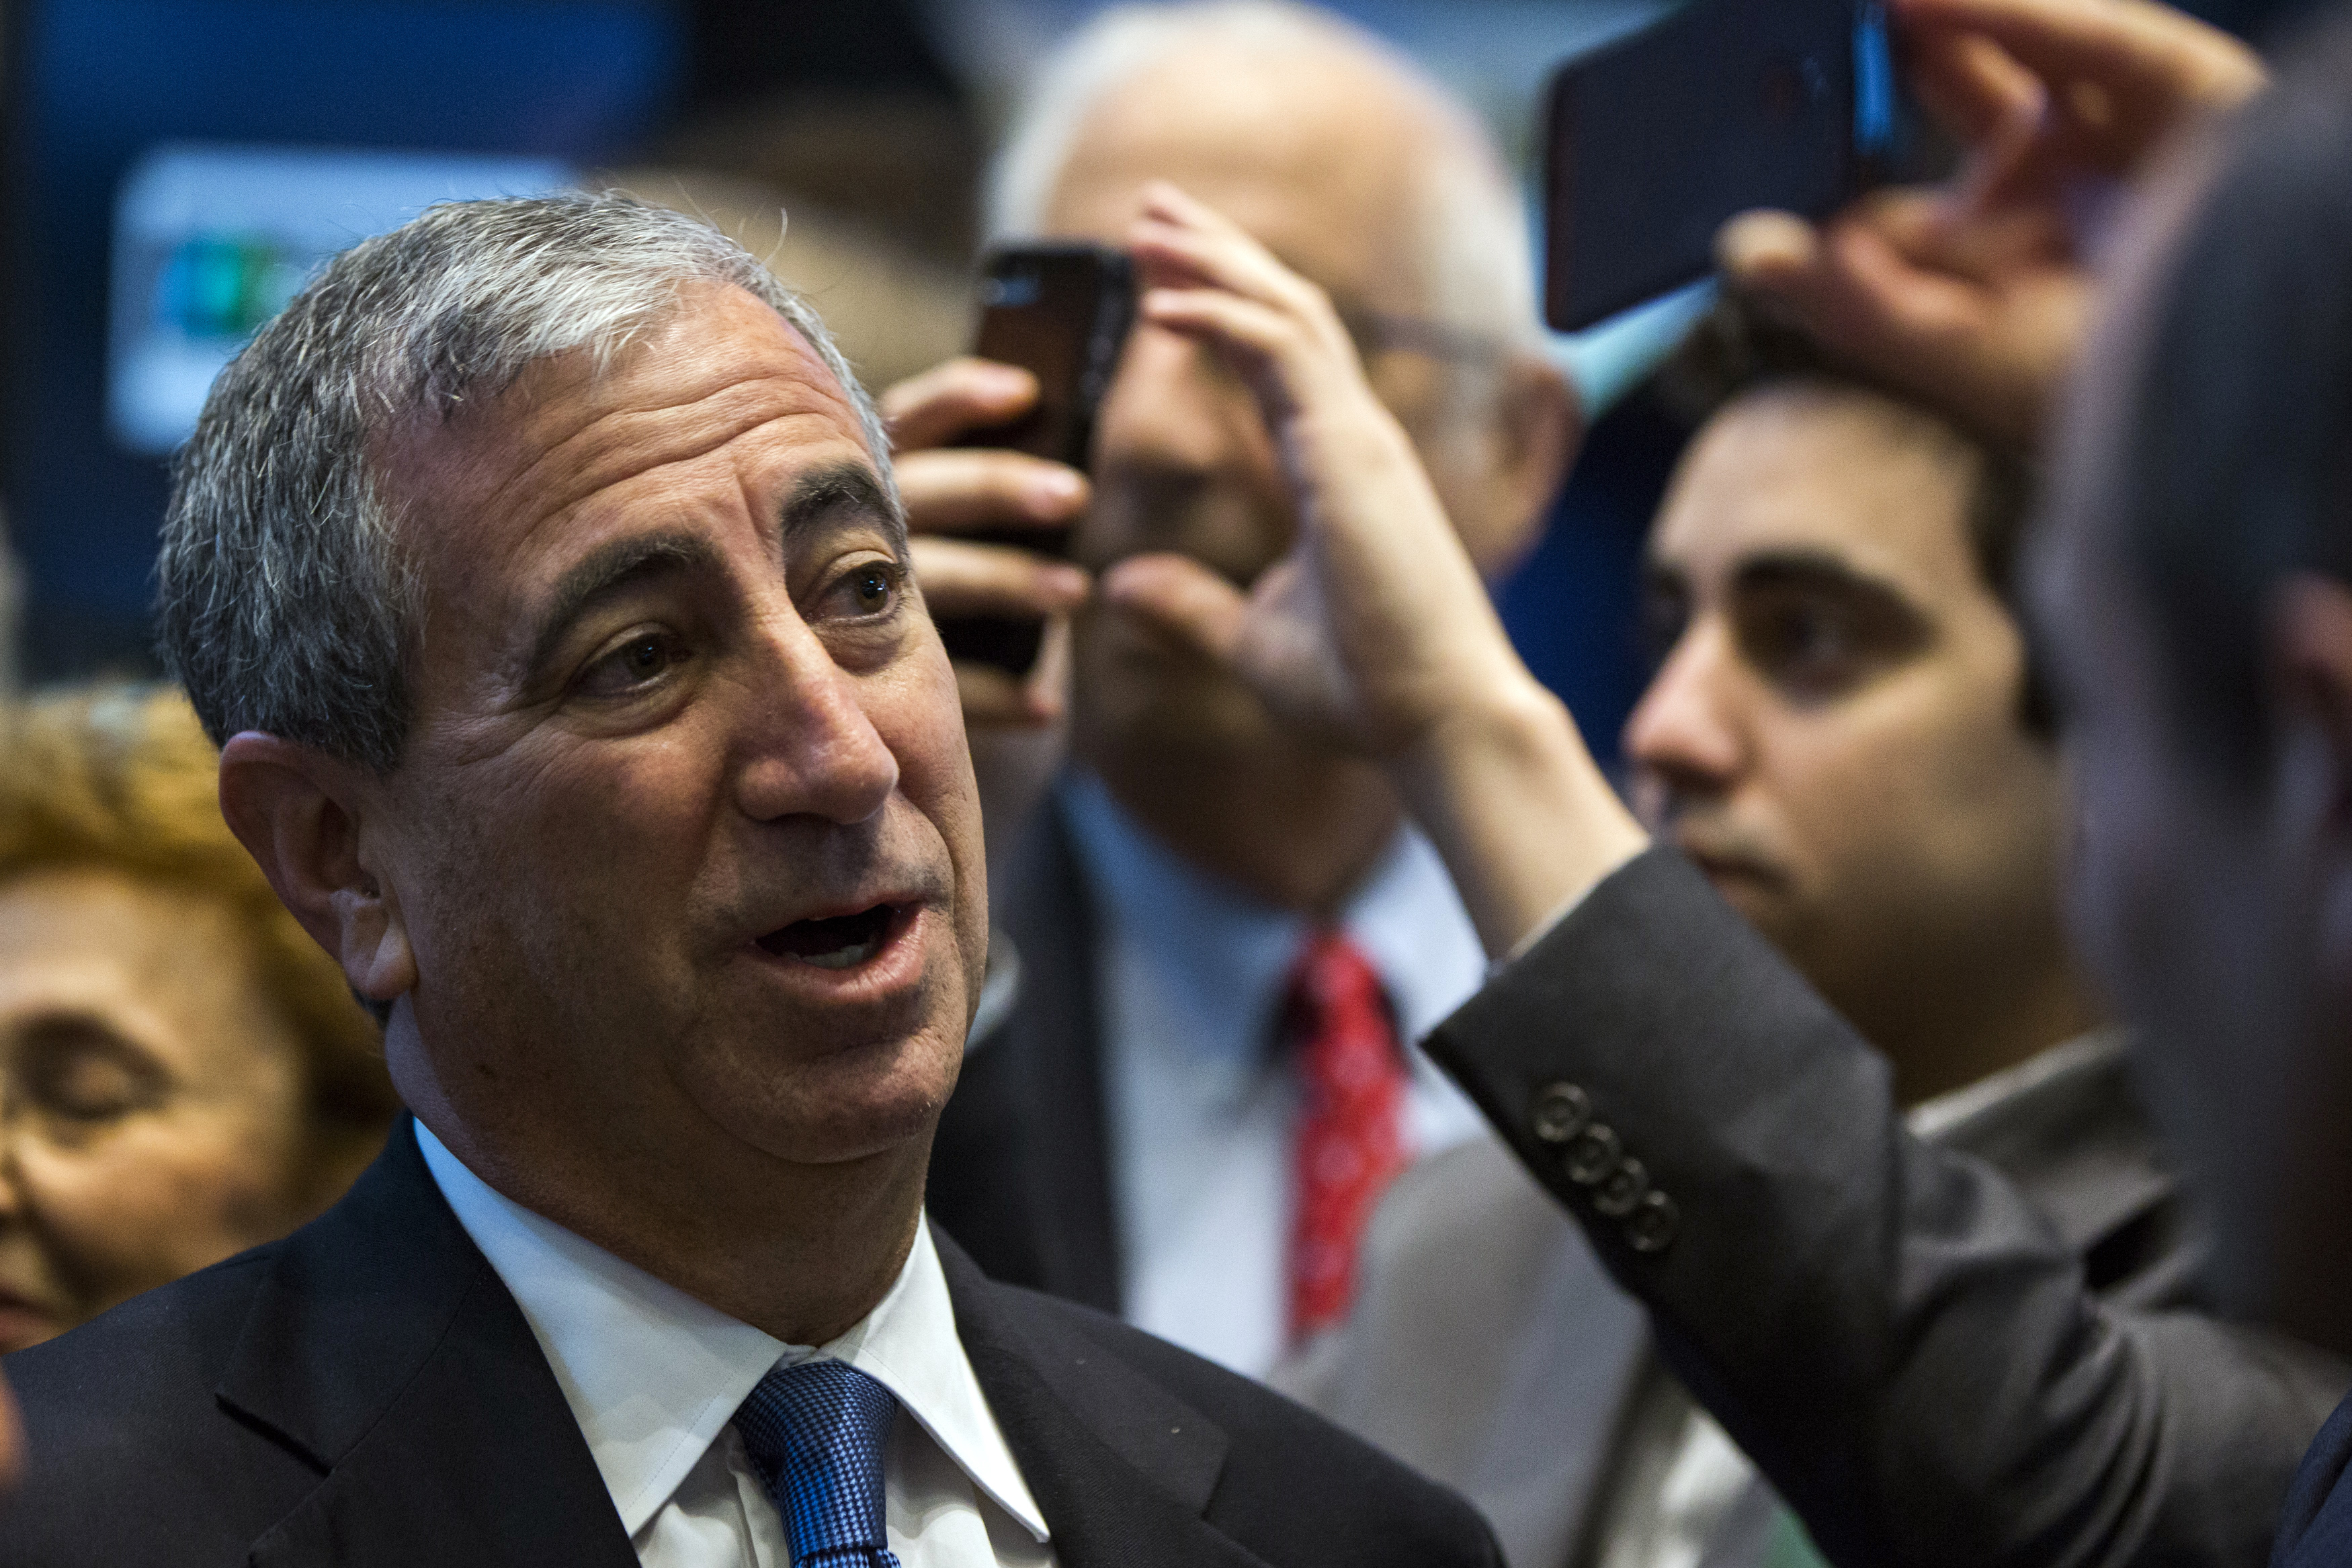 Chief executive officer of Moelis & Co., Ken Moelis smiles after ringing the bell to mark the company